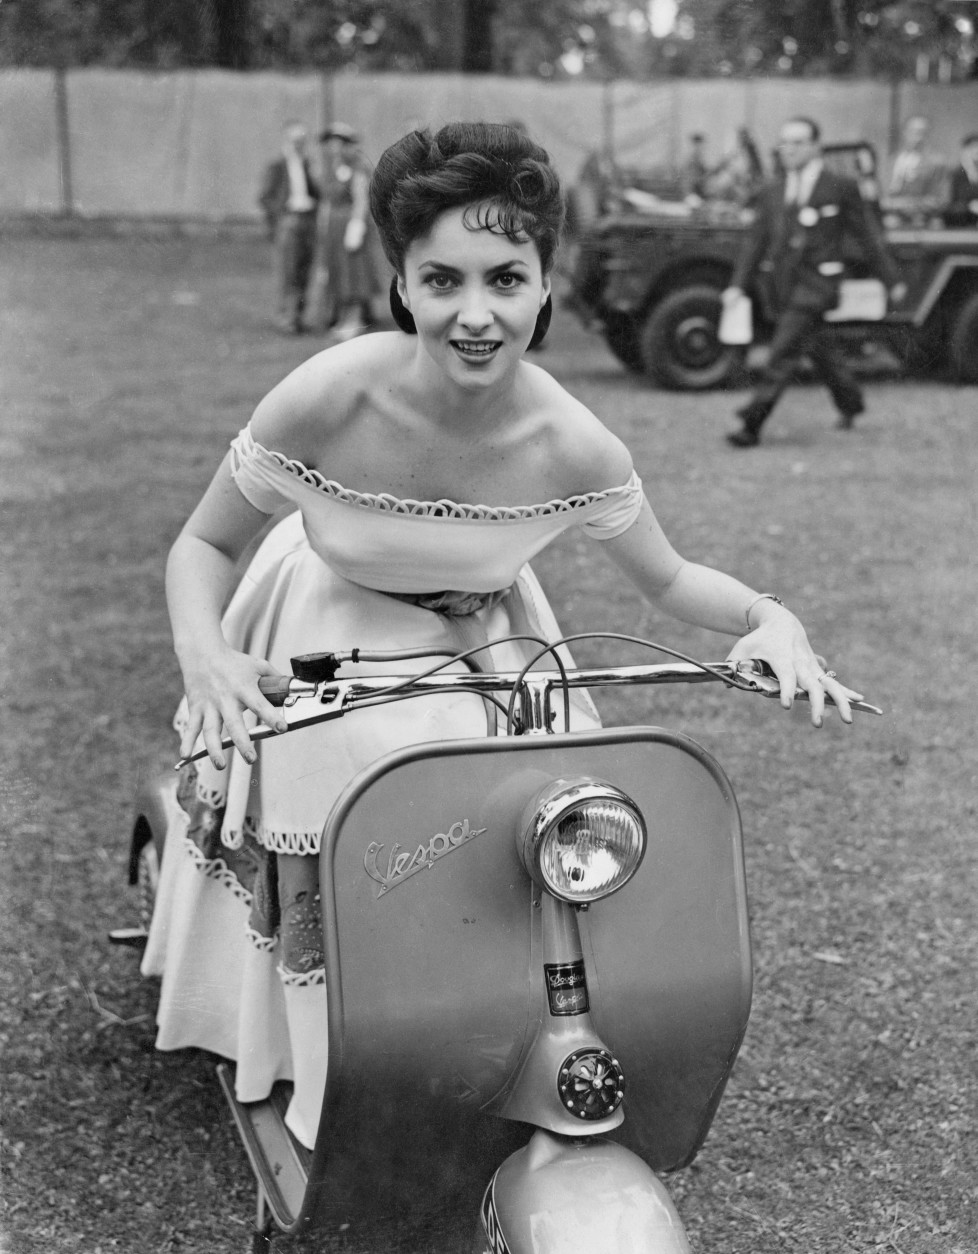 14th June 1952: Italian actress Gina Lollobrigida attends the Great Film Garden Party at Morden Hall Park in Surrey, on a Vespa motor scooter. She is in Britain to promote an Italian Film Festival. (Photo by Ron Case/Keystone/Getty Images)